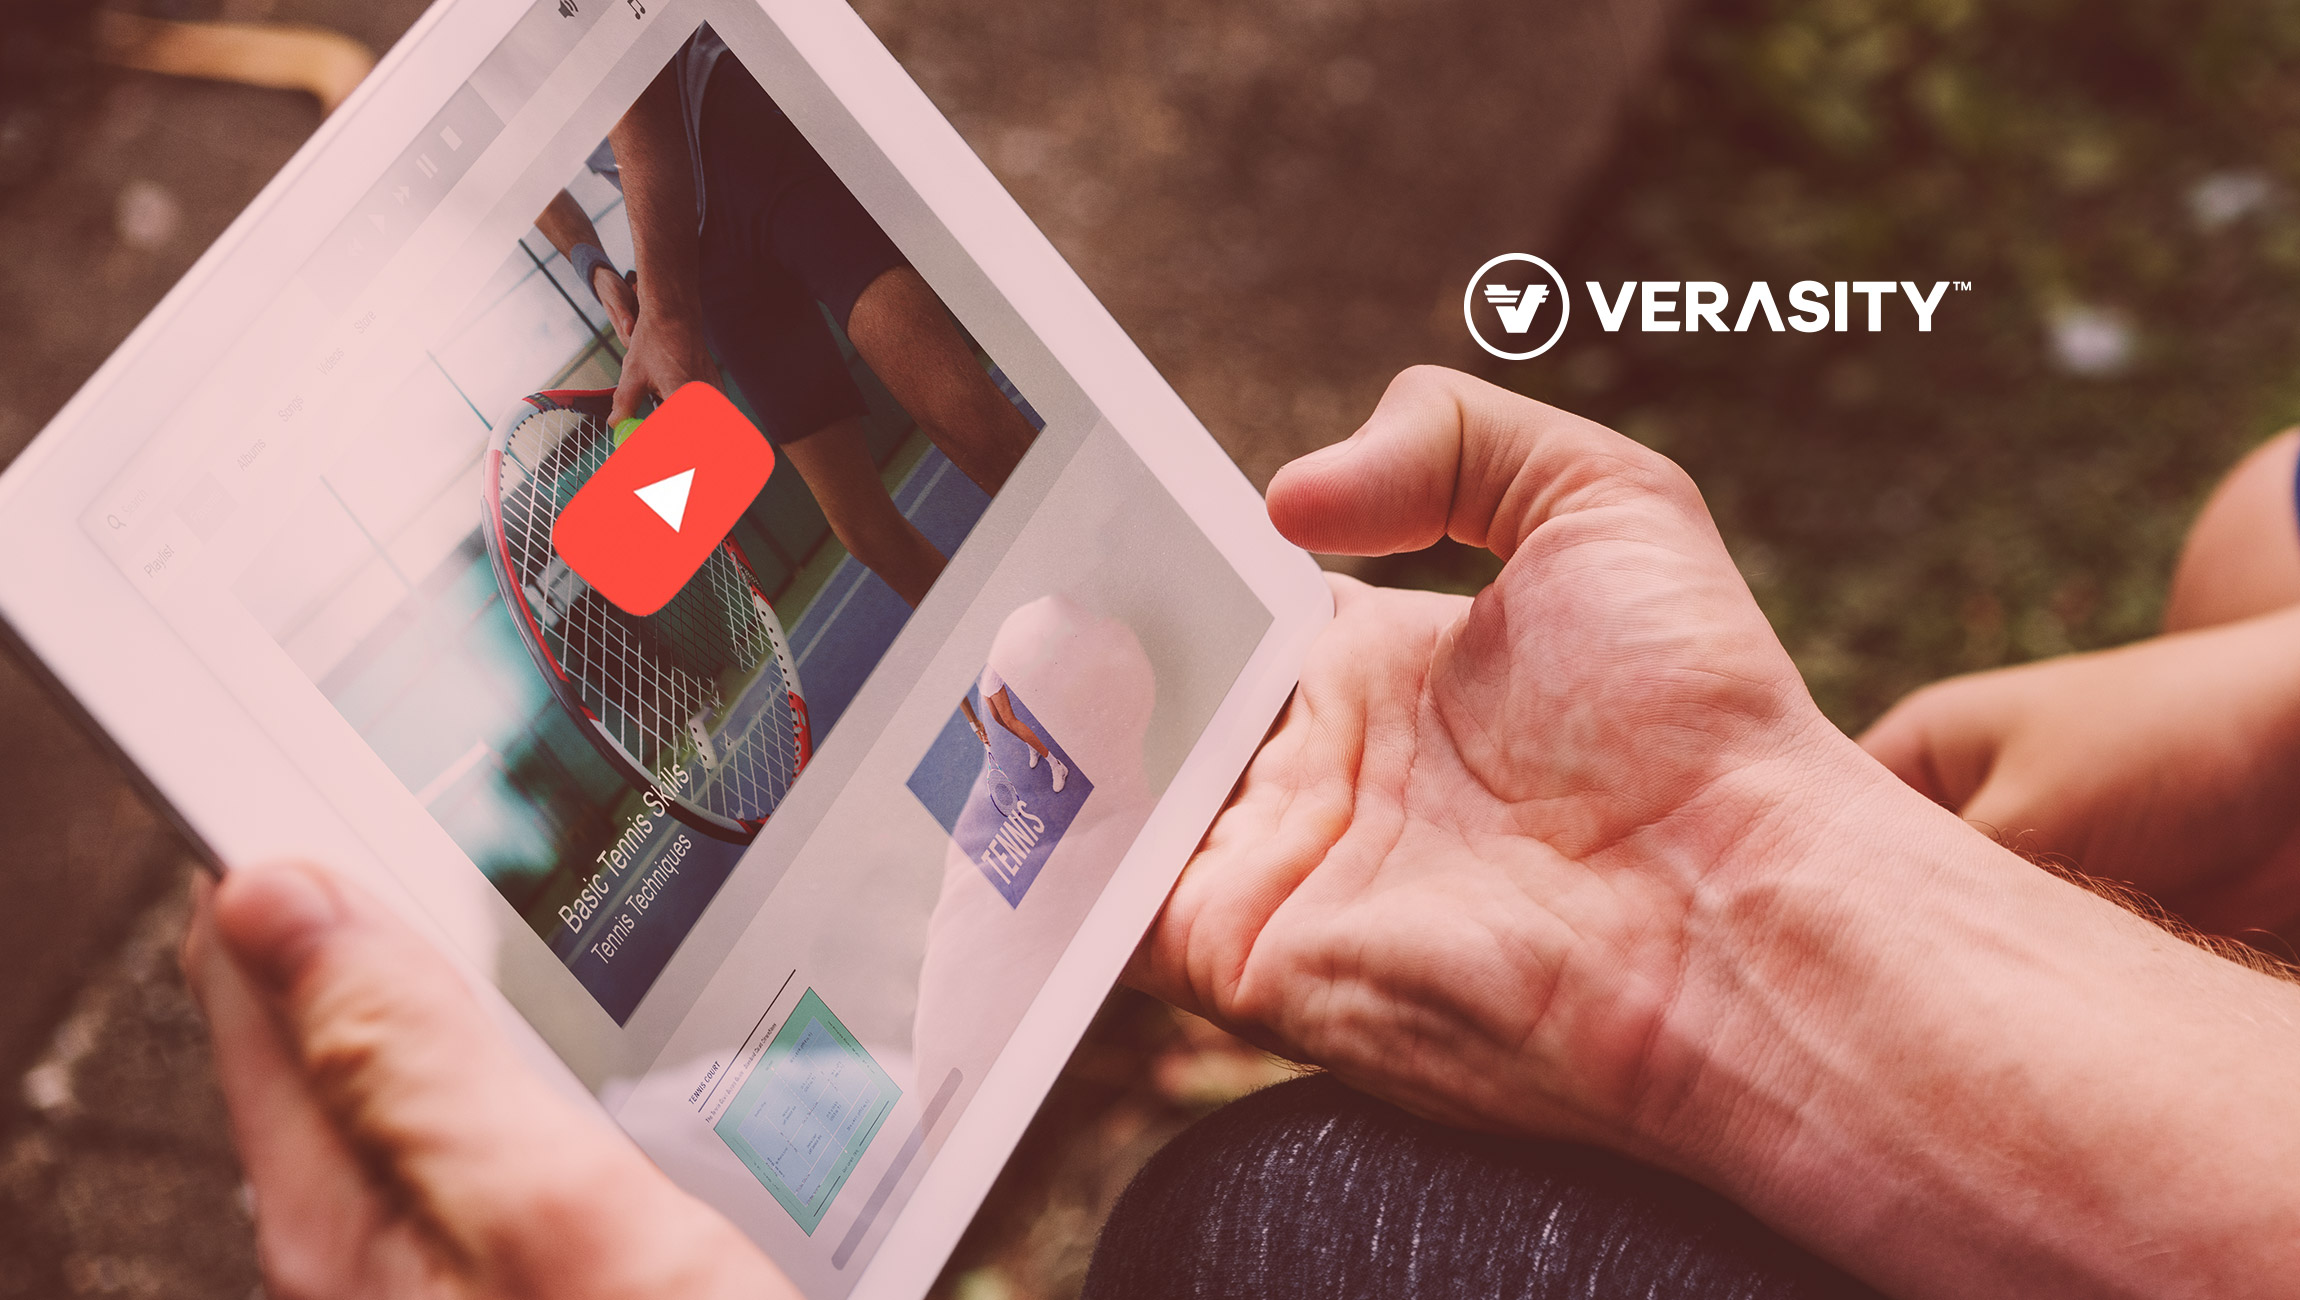 Verasity Announces Integration with YouTube